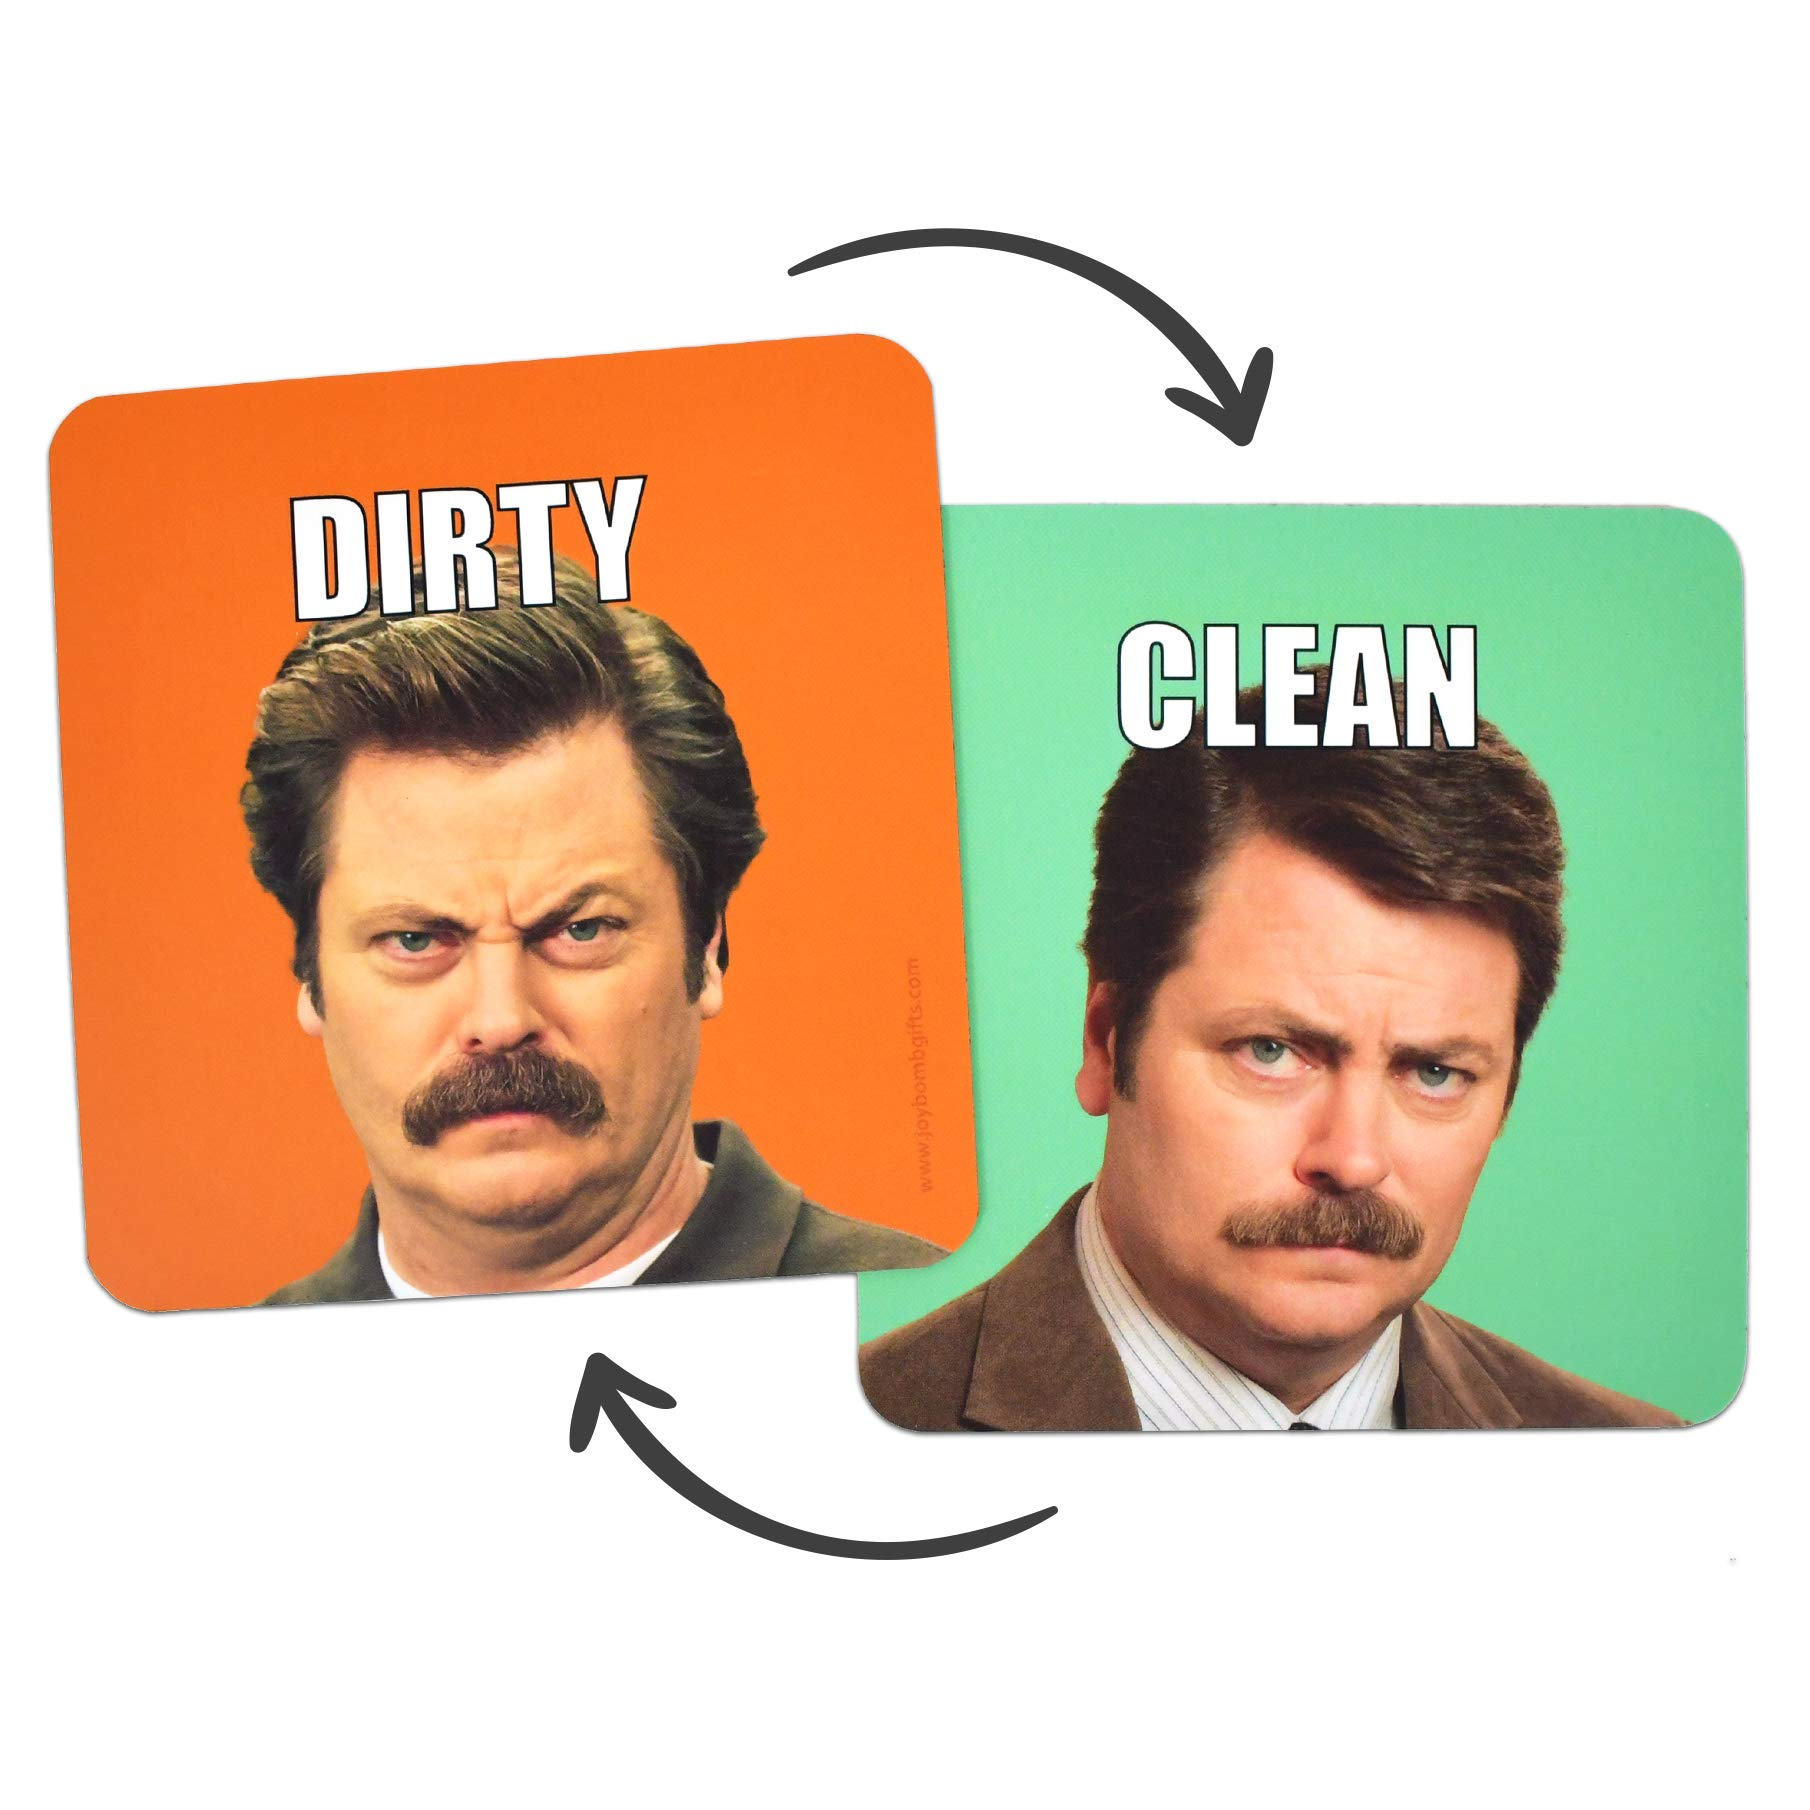 Joybomb Gift Co. Clean Dirty Dishwasher Magnet - Ron Swanson - Waterproof UV Coating - Made in The USA by Joybomb Gift Co.